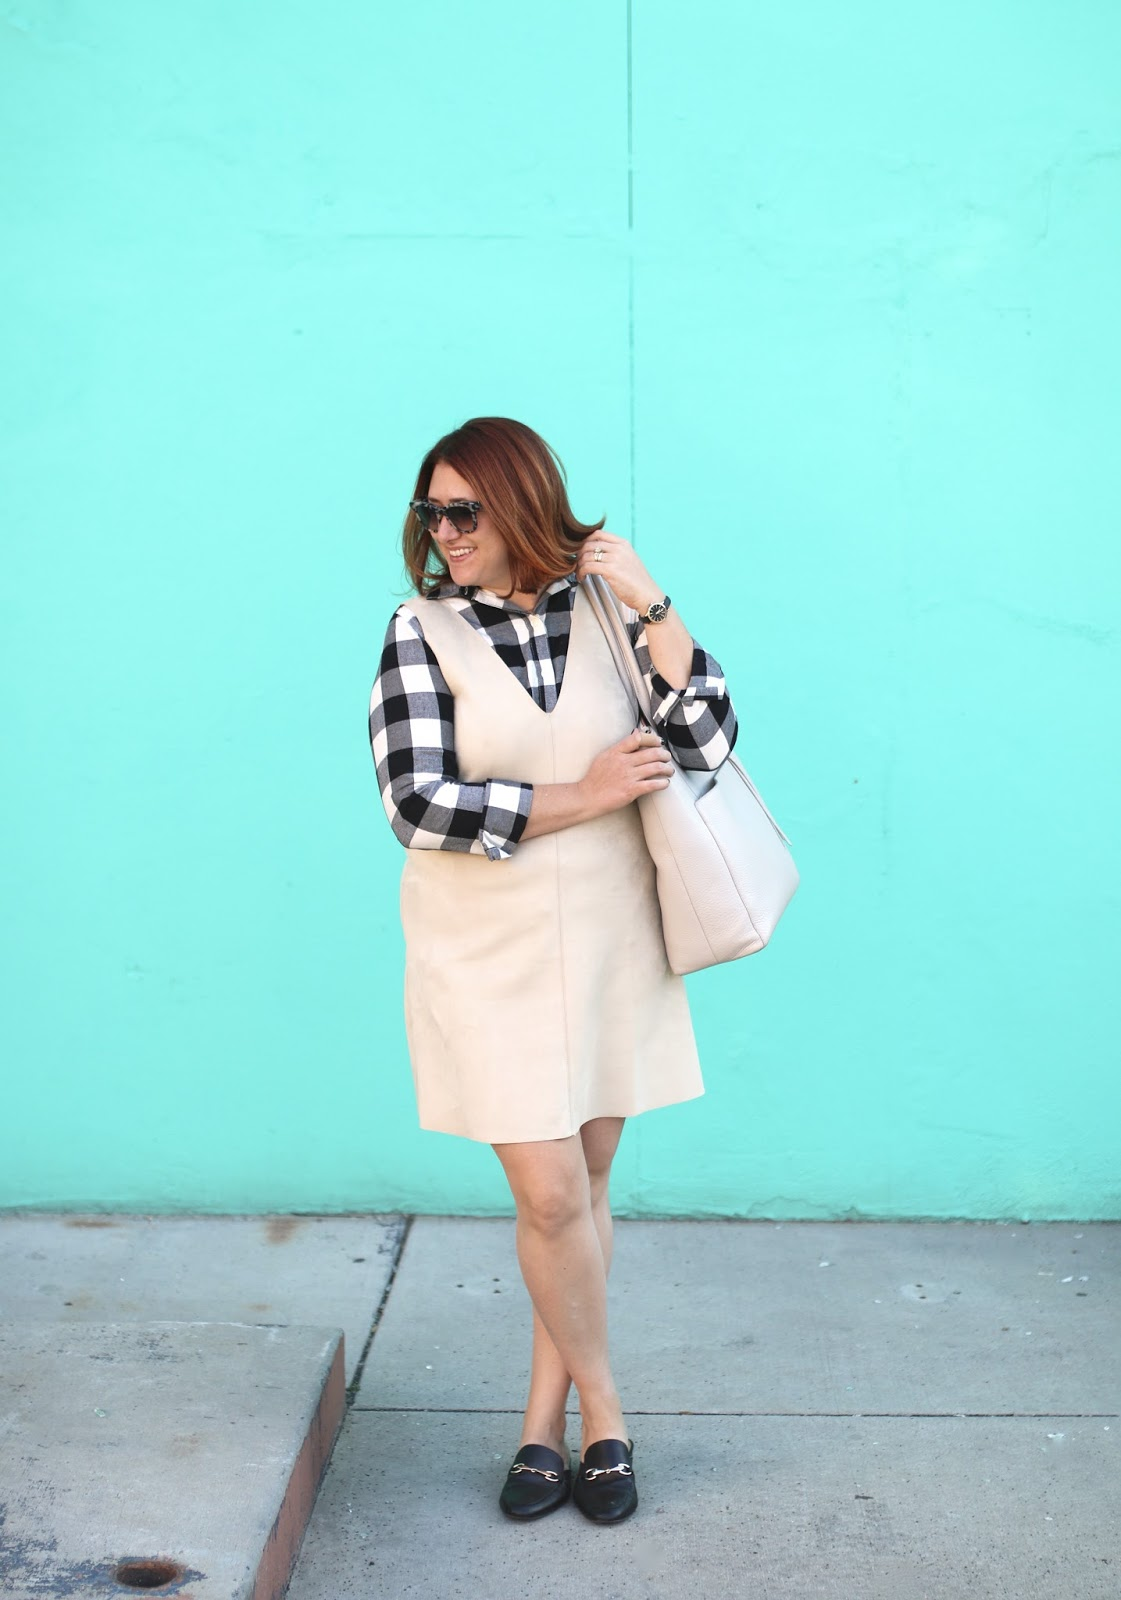 target black gucci look alike mules, buffalo plaid, zara faux suede dress, dagne dover Charlie tote